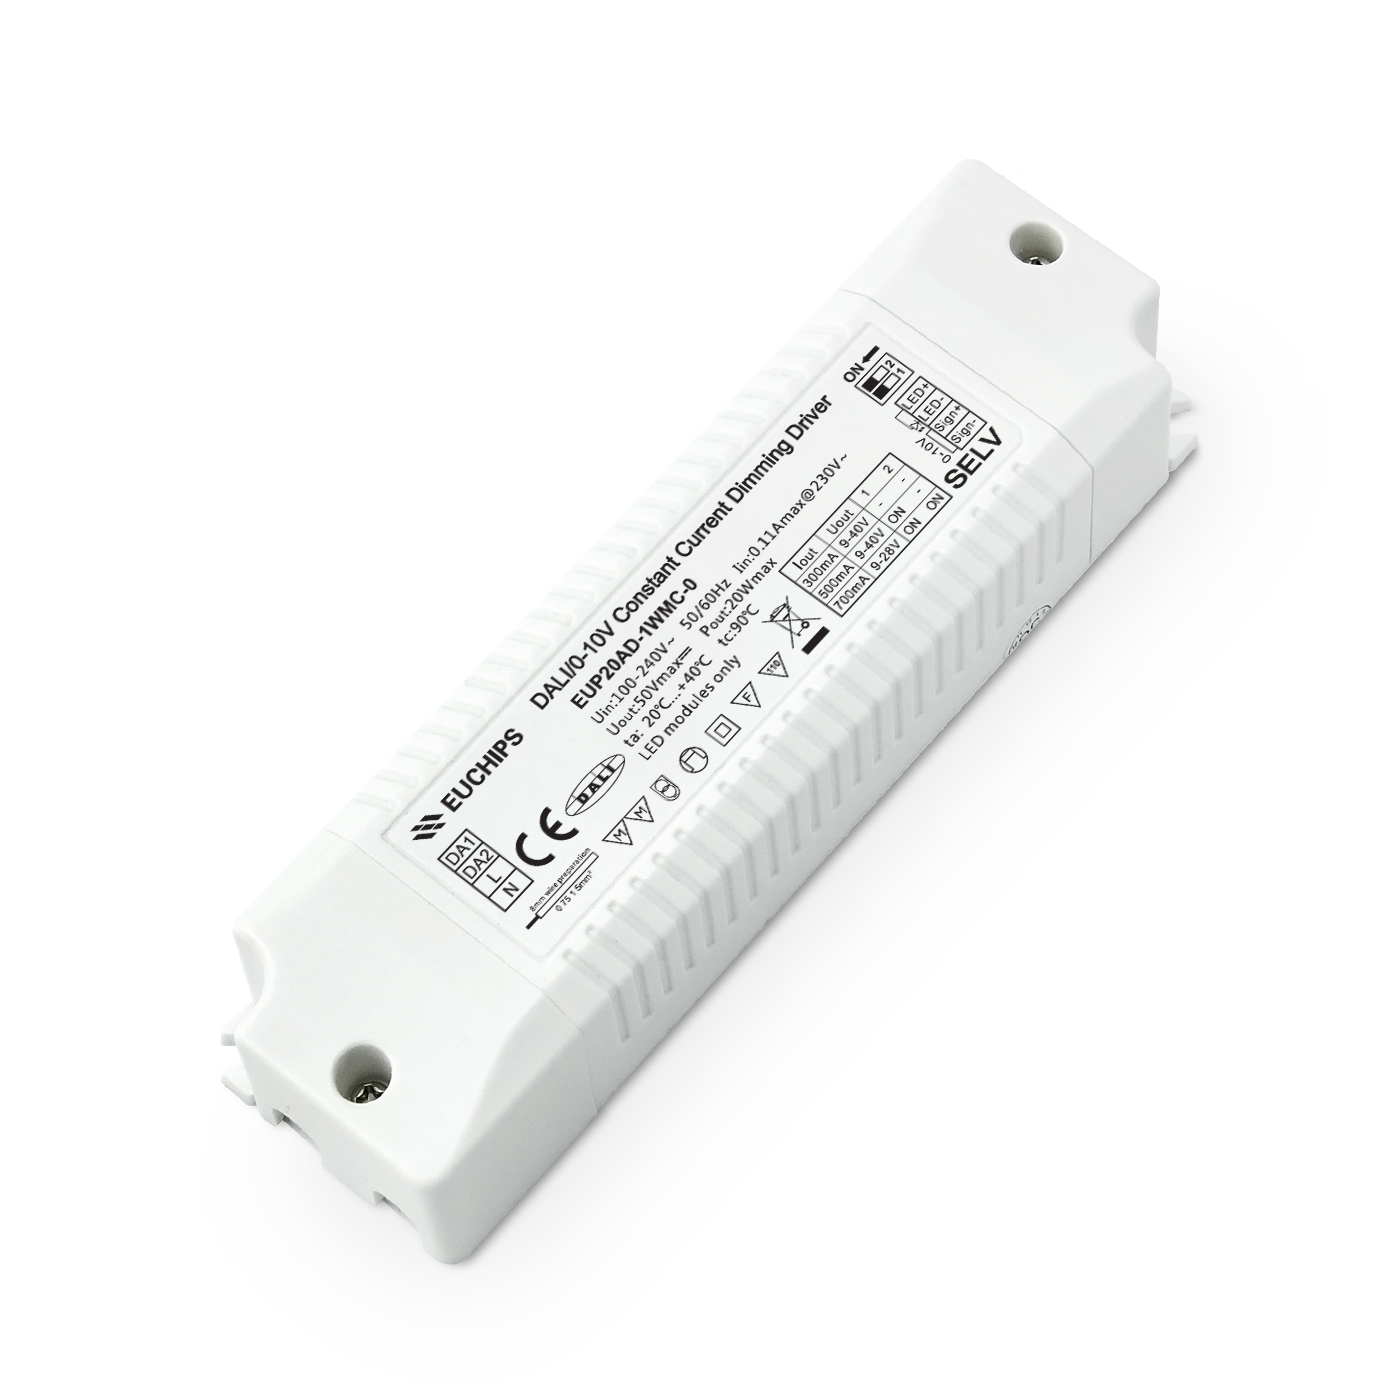 IOS Certificate Led Warehouse Light -